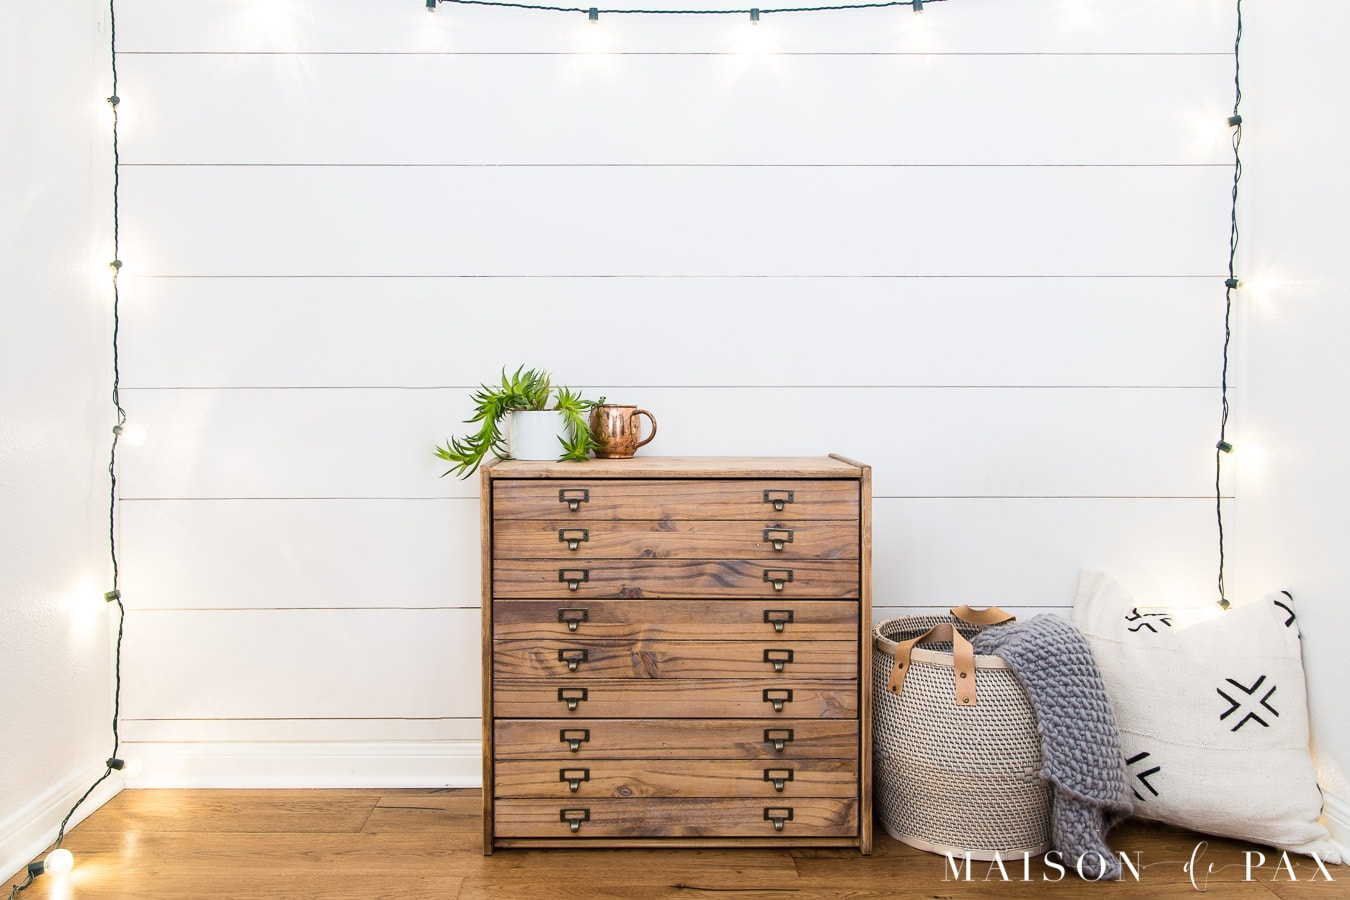 DIY IKEA Hack makeover with Rast Dresser- Maison de Pax